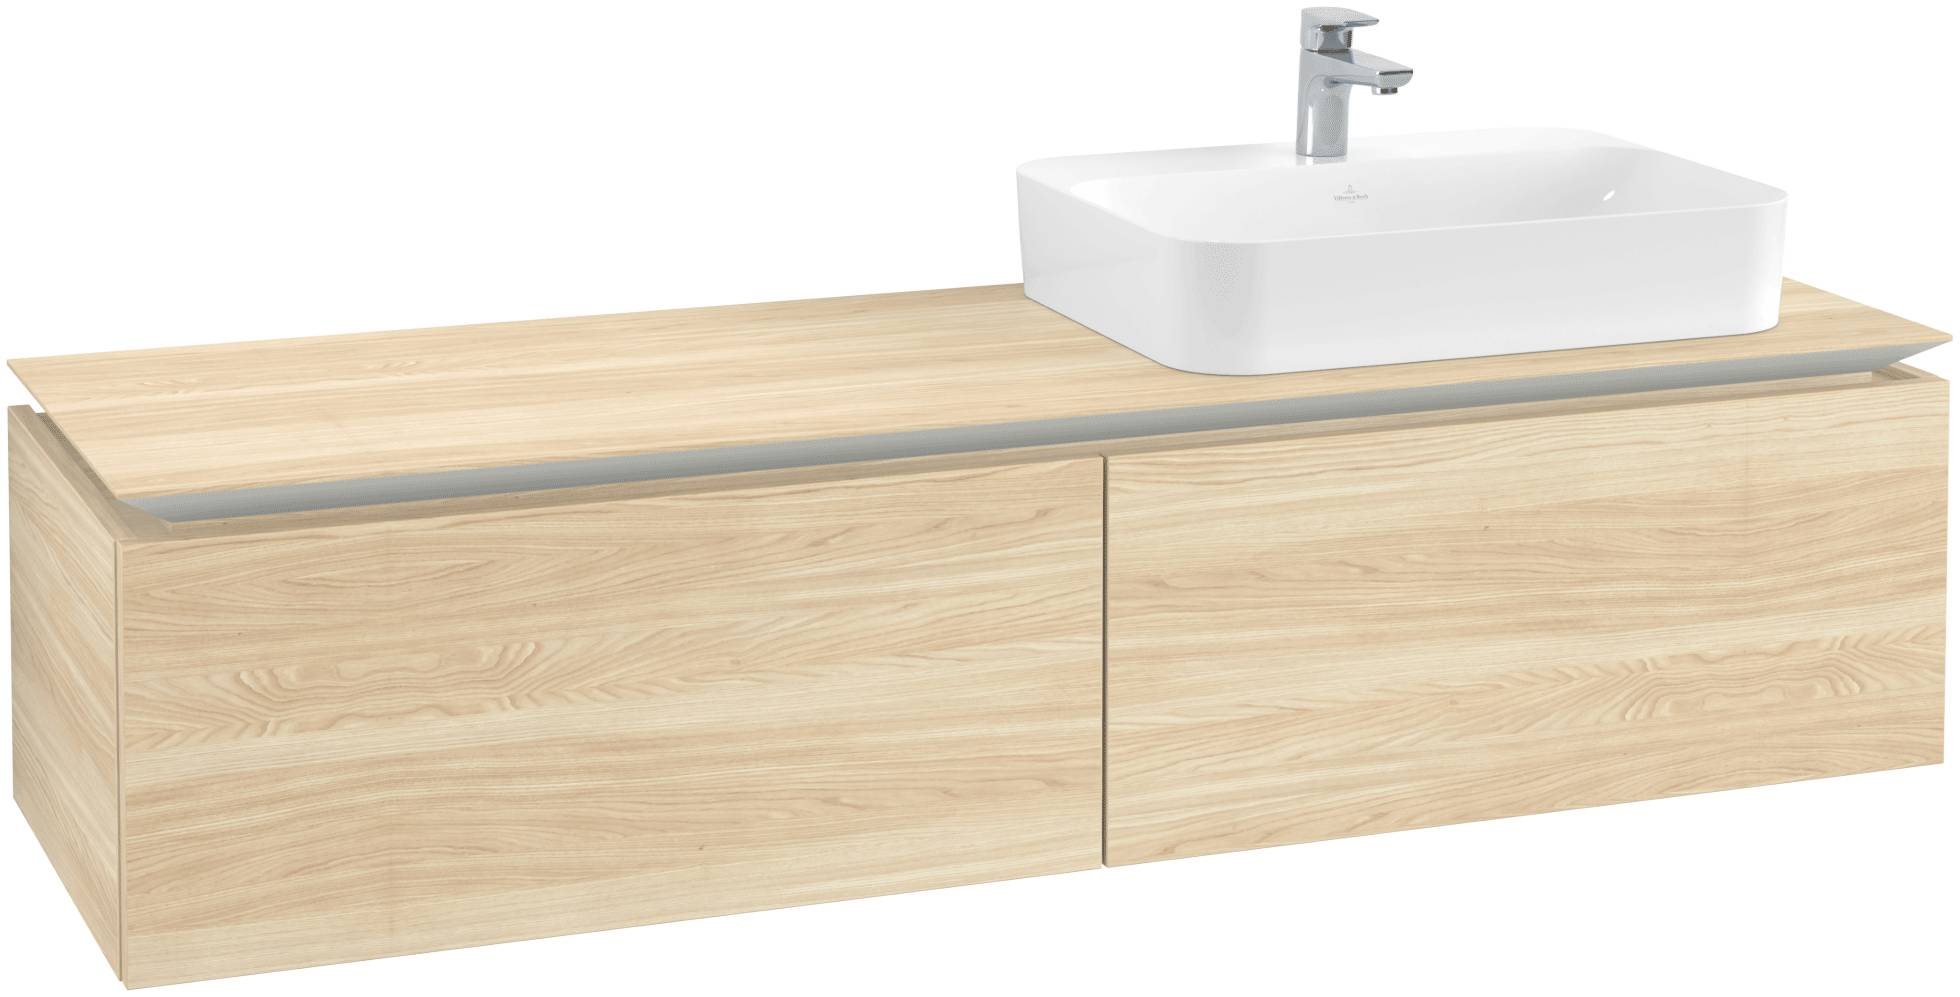 Villeroy & Boch Villeroy & Boch Legato - Meuble sous lavabo with 2 drawers & 1 cut-out right 1600 x 380 x 500mm orme impresso